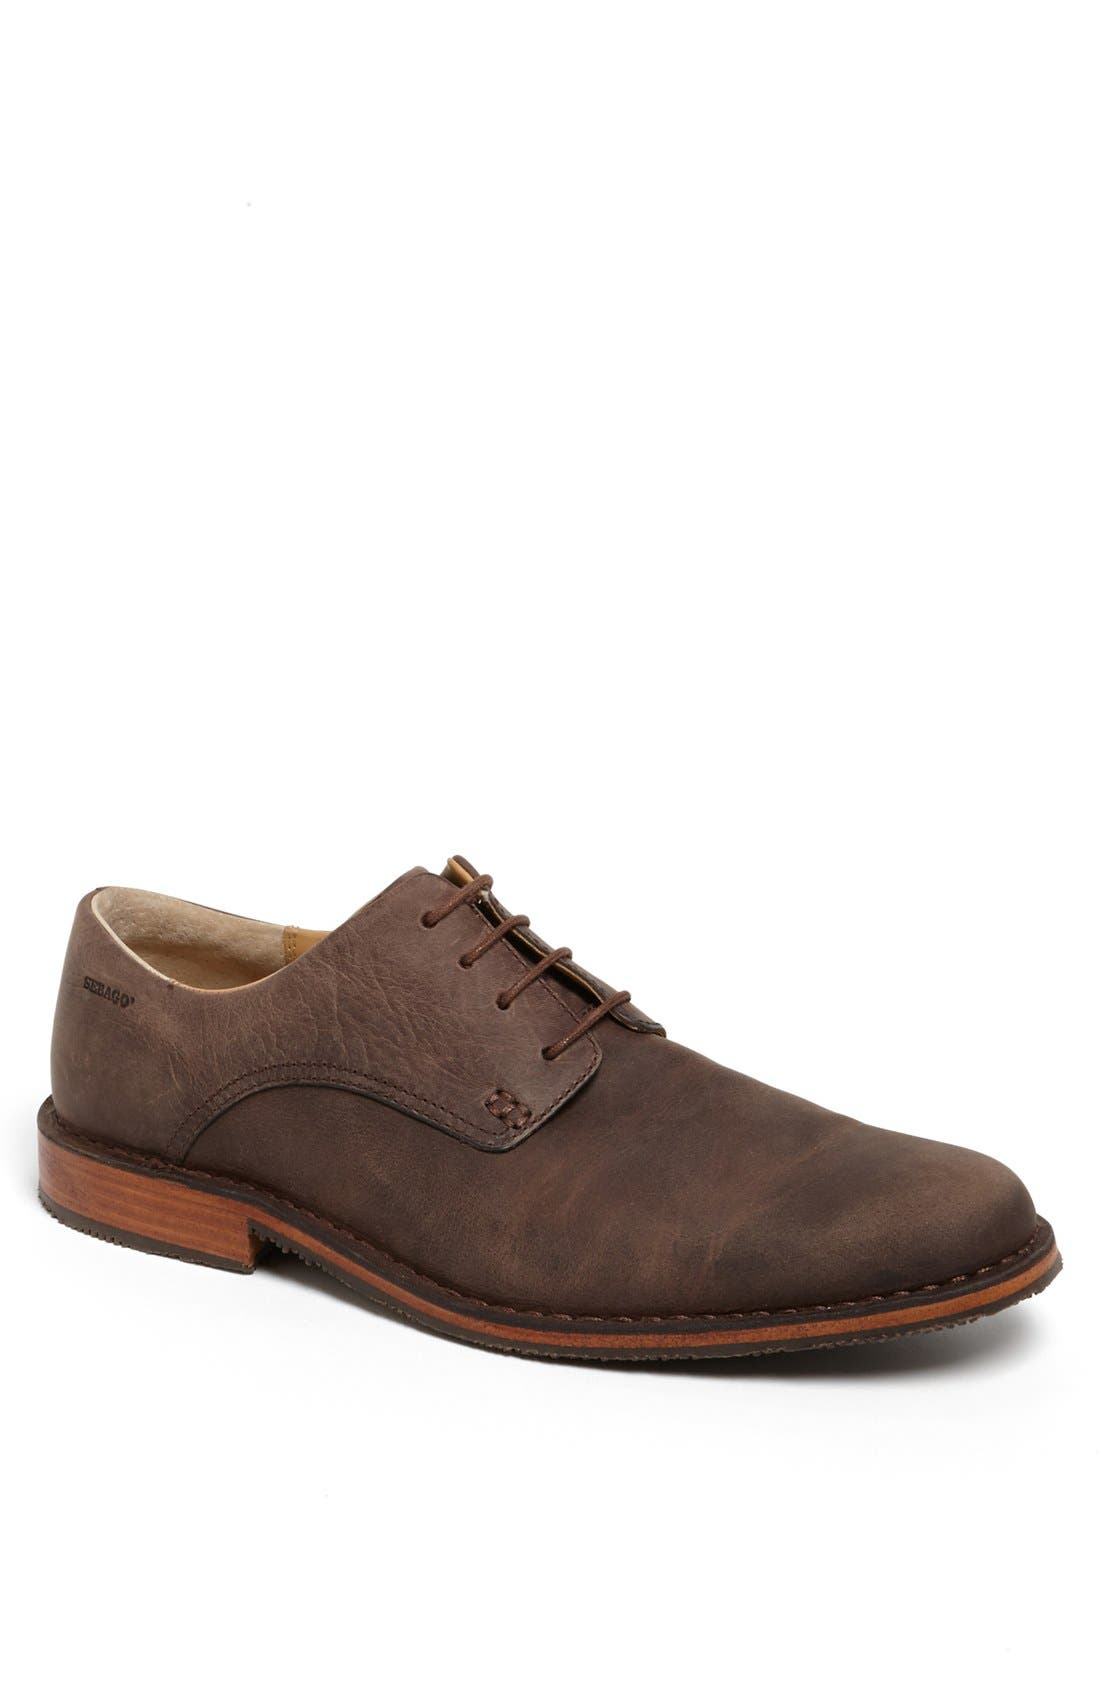 Alternate Image 1 Selected - Sebago 'Salem' Oxford (Online Only)